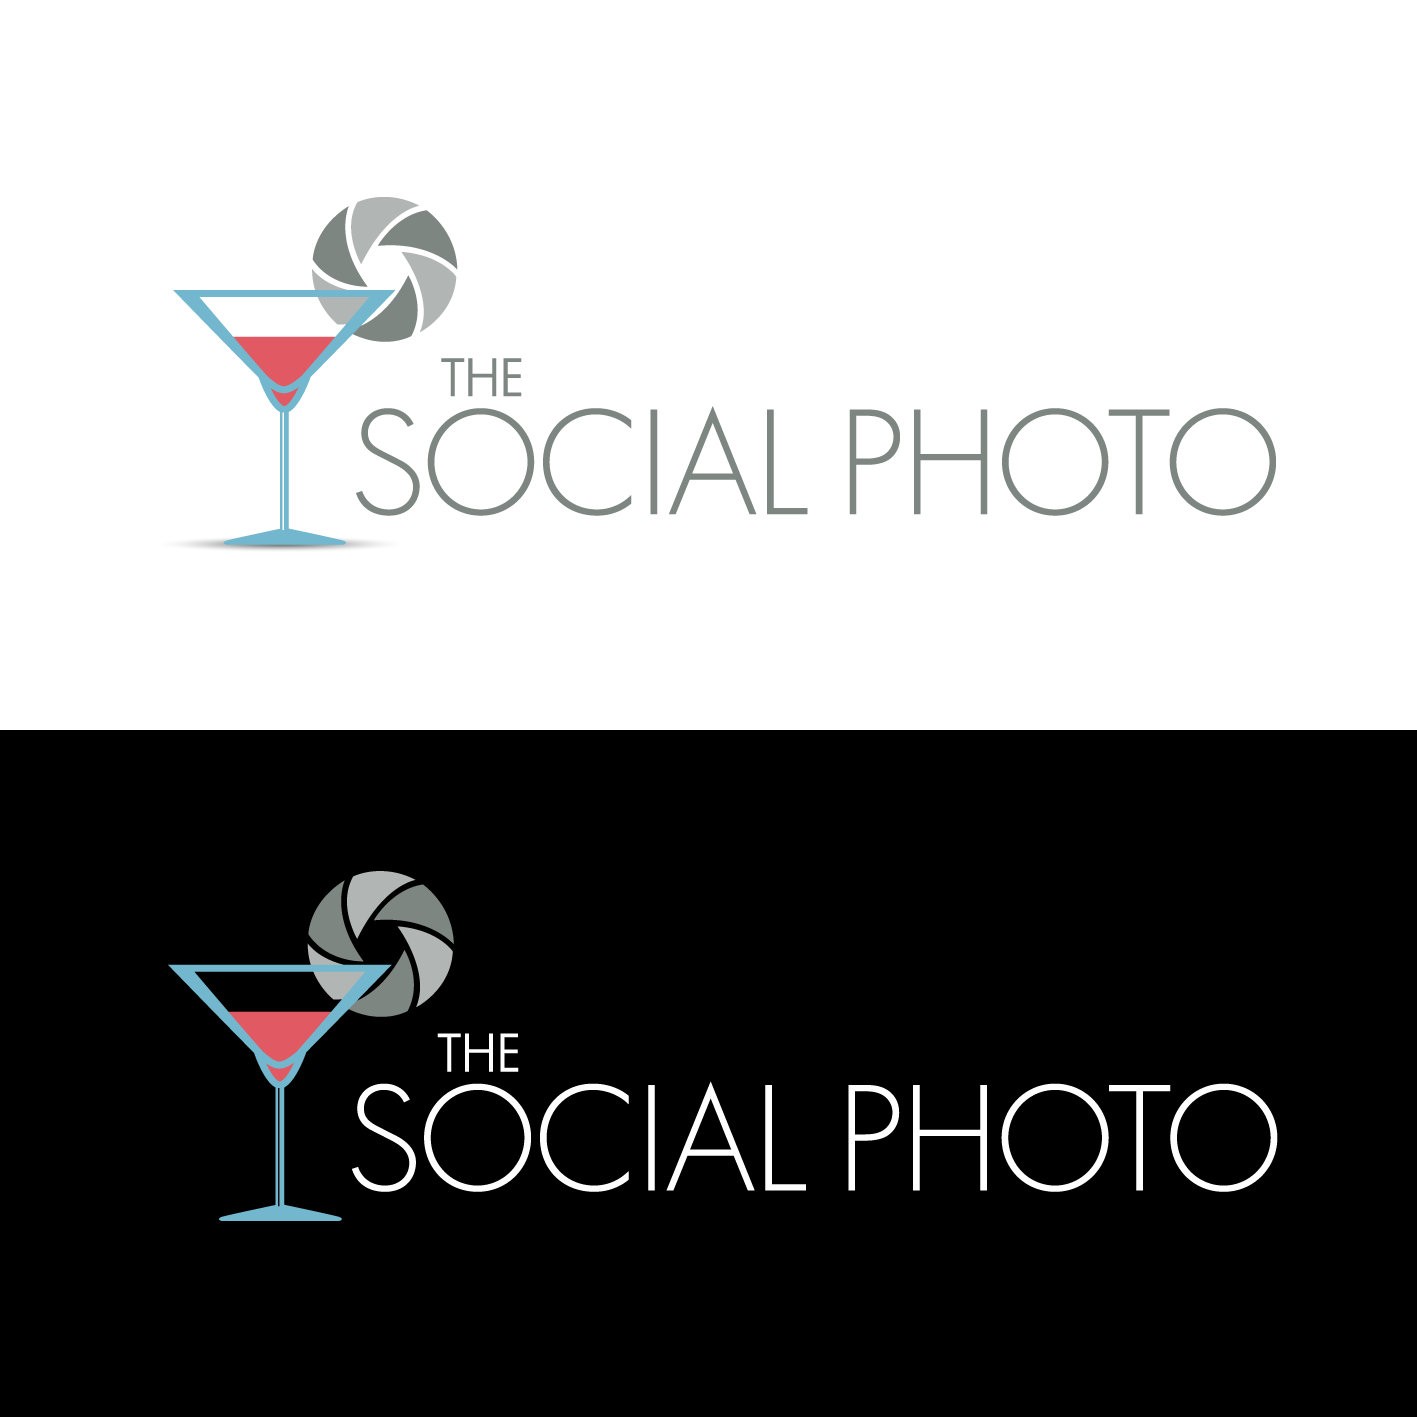 Logo Design by luna - Entry No. 22 in the Logo Design Contest New Logo Design for the social photo.